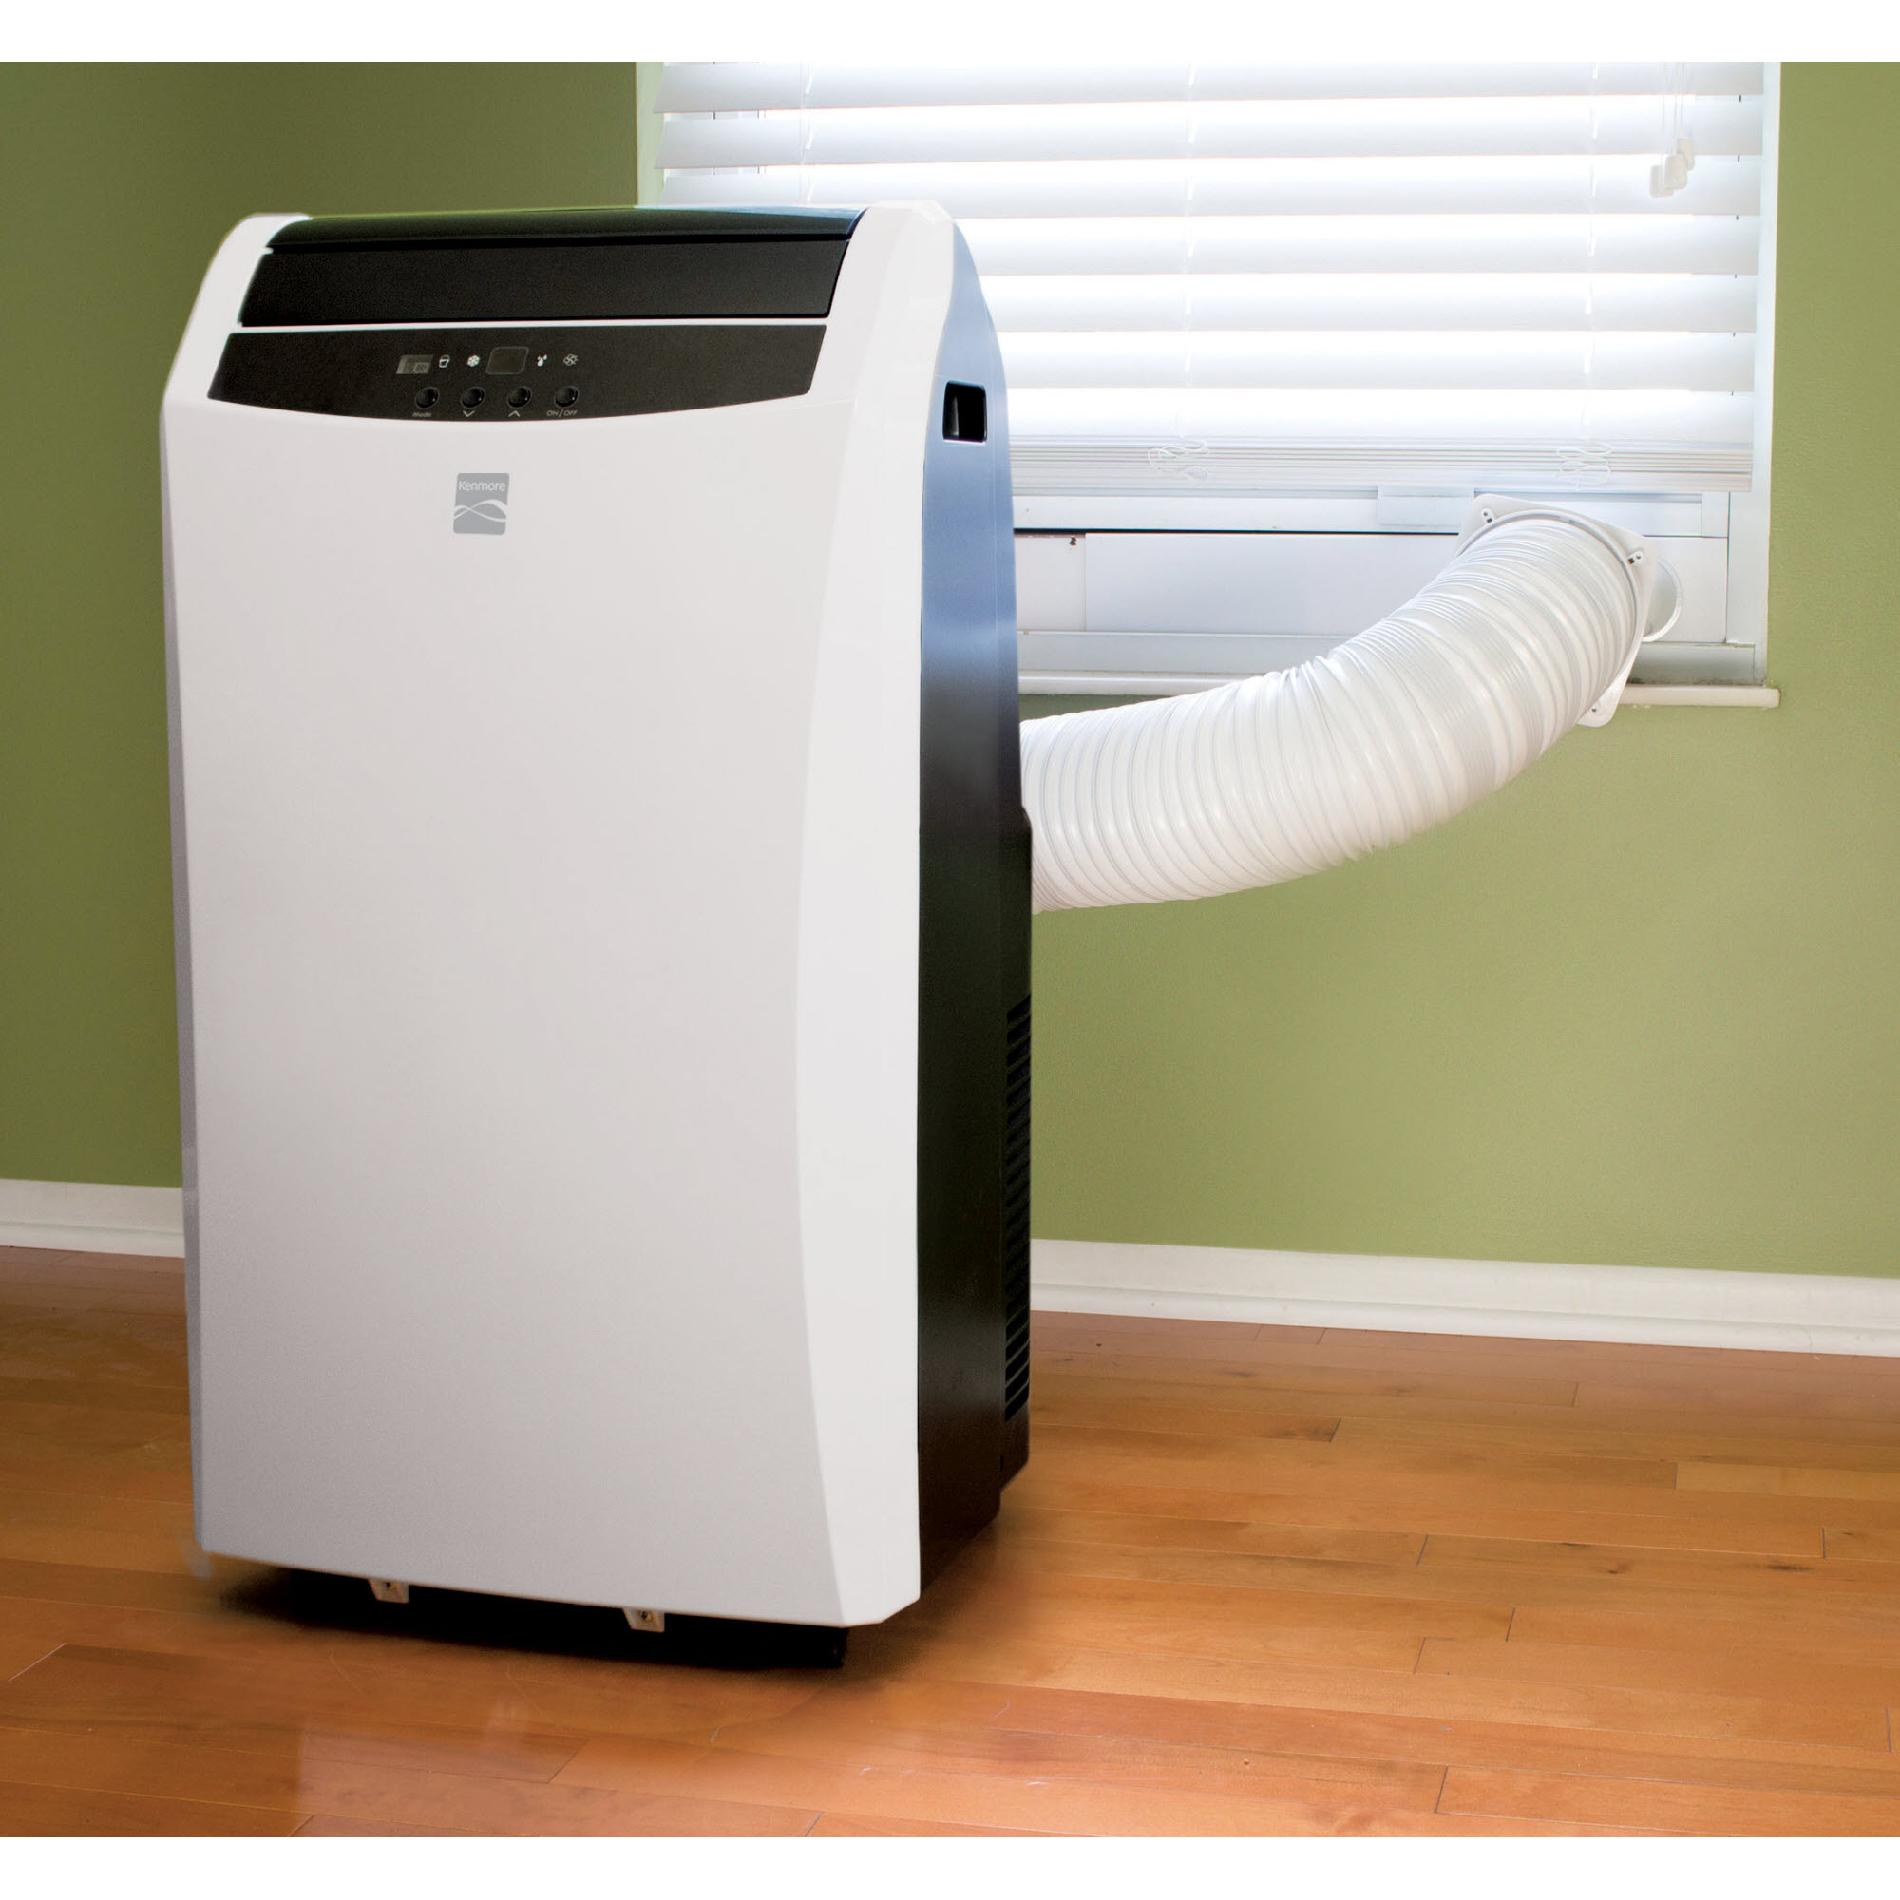 Windowless Air Conditioner